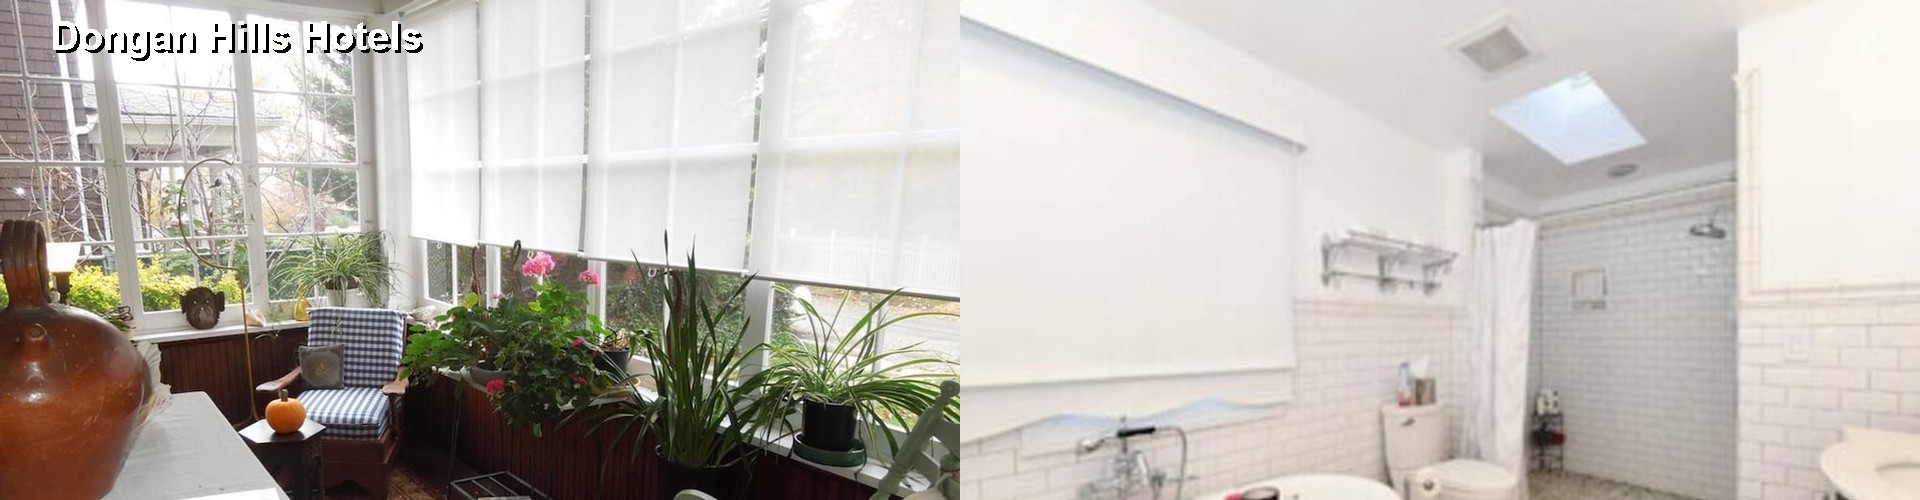 5 Best Hotels near Dongan Hills